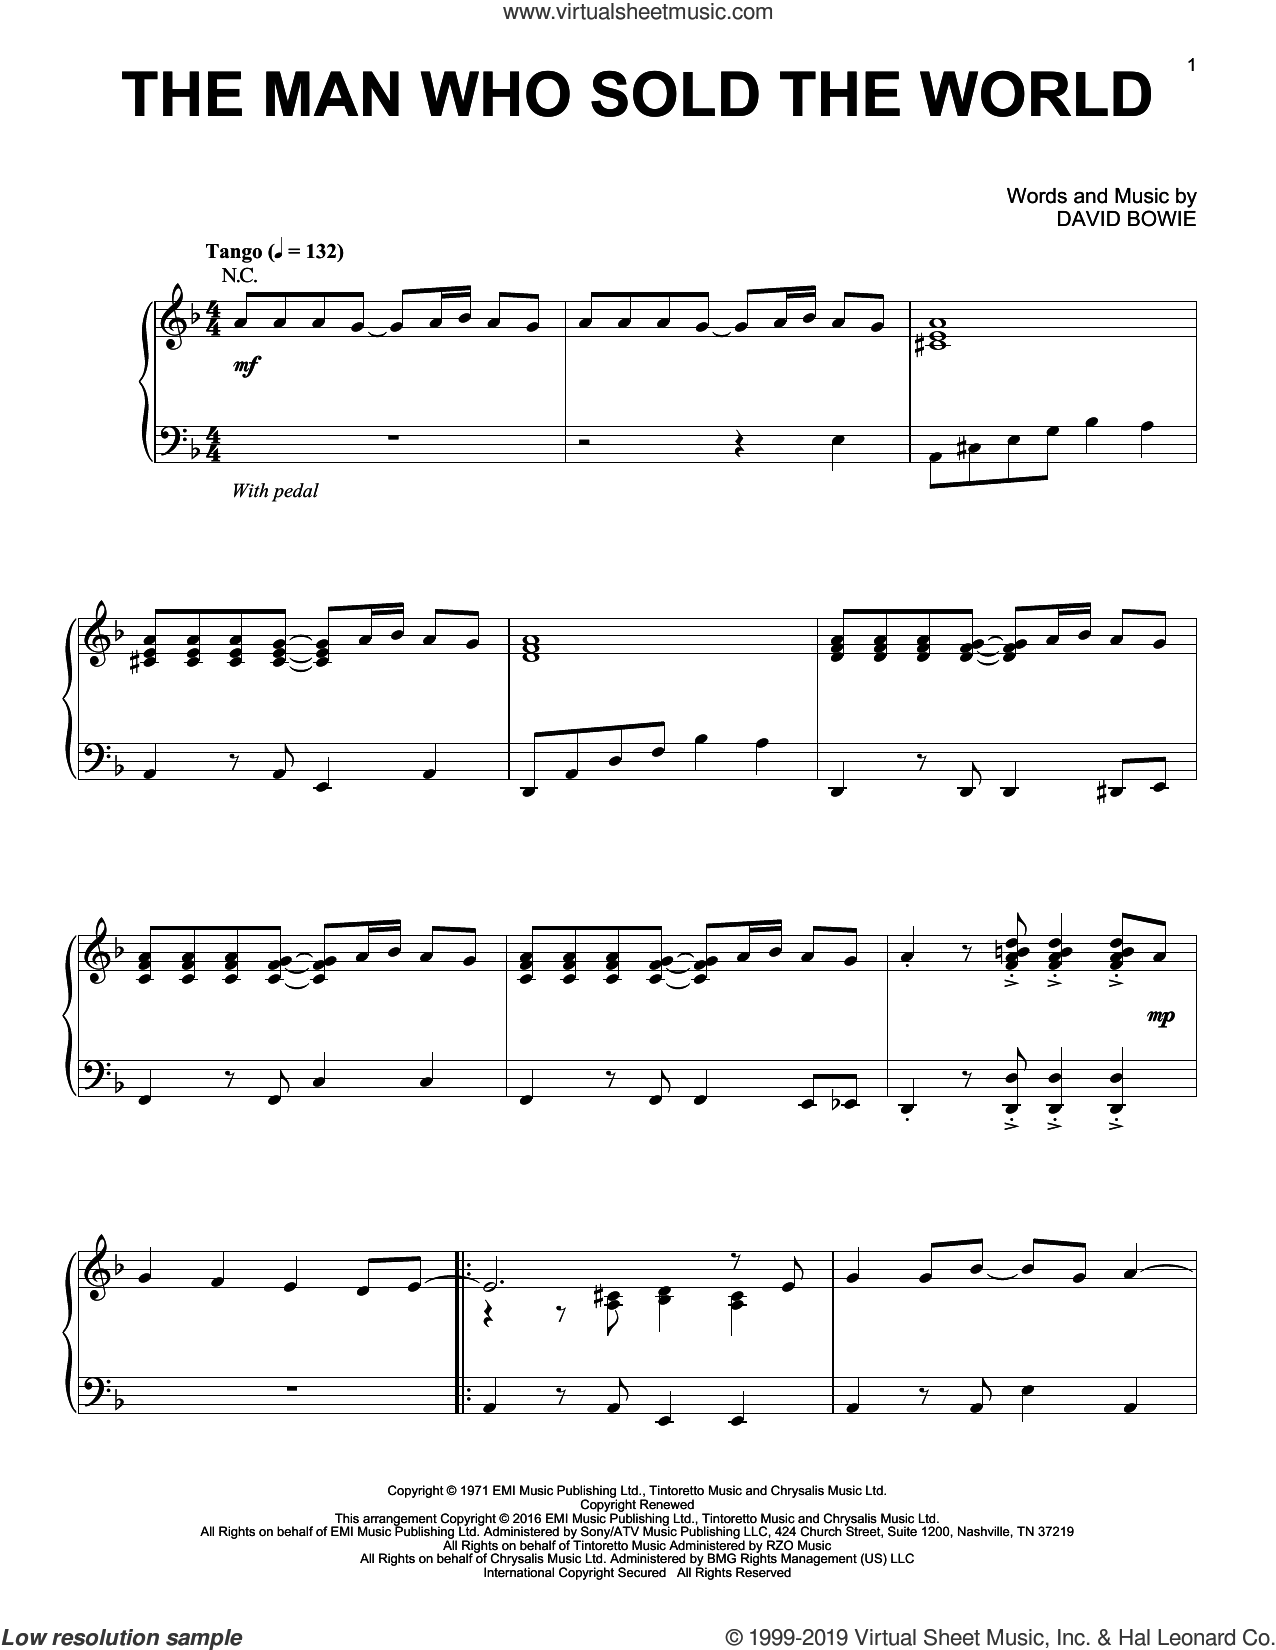 The Man Who Sold The World [Jazz version] sheet music for piano solo by Nirvana and David Bowie, intermediate skill level